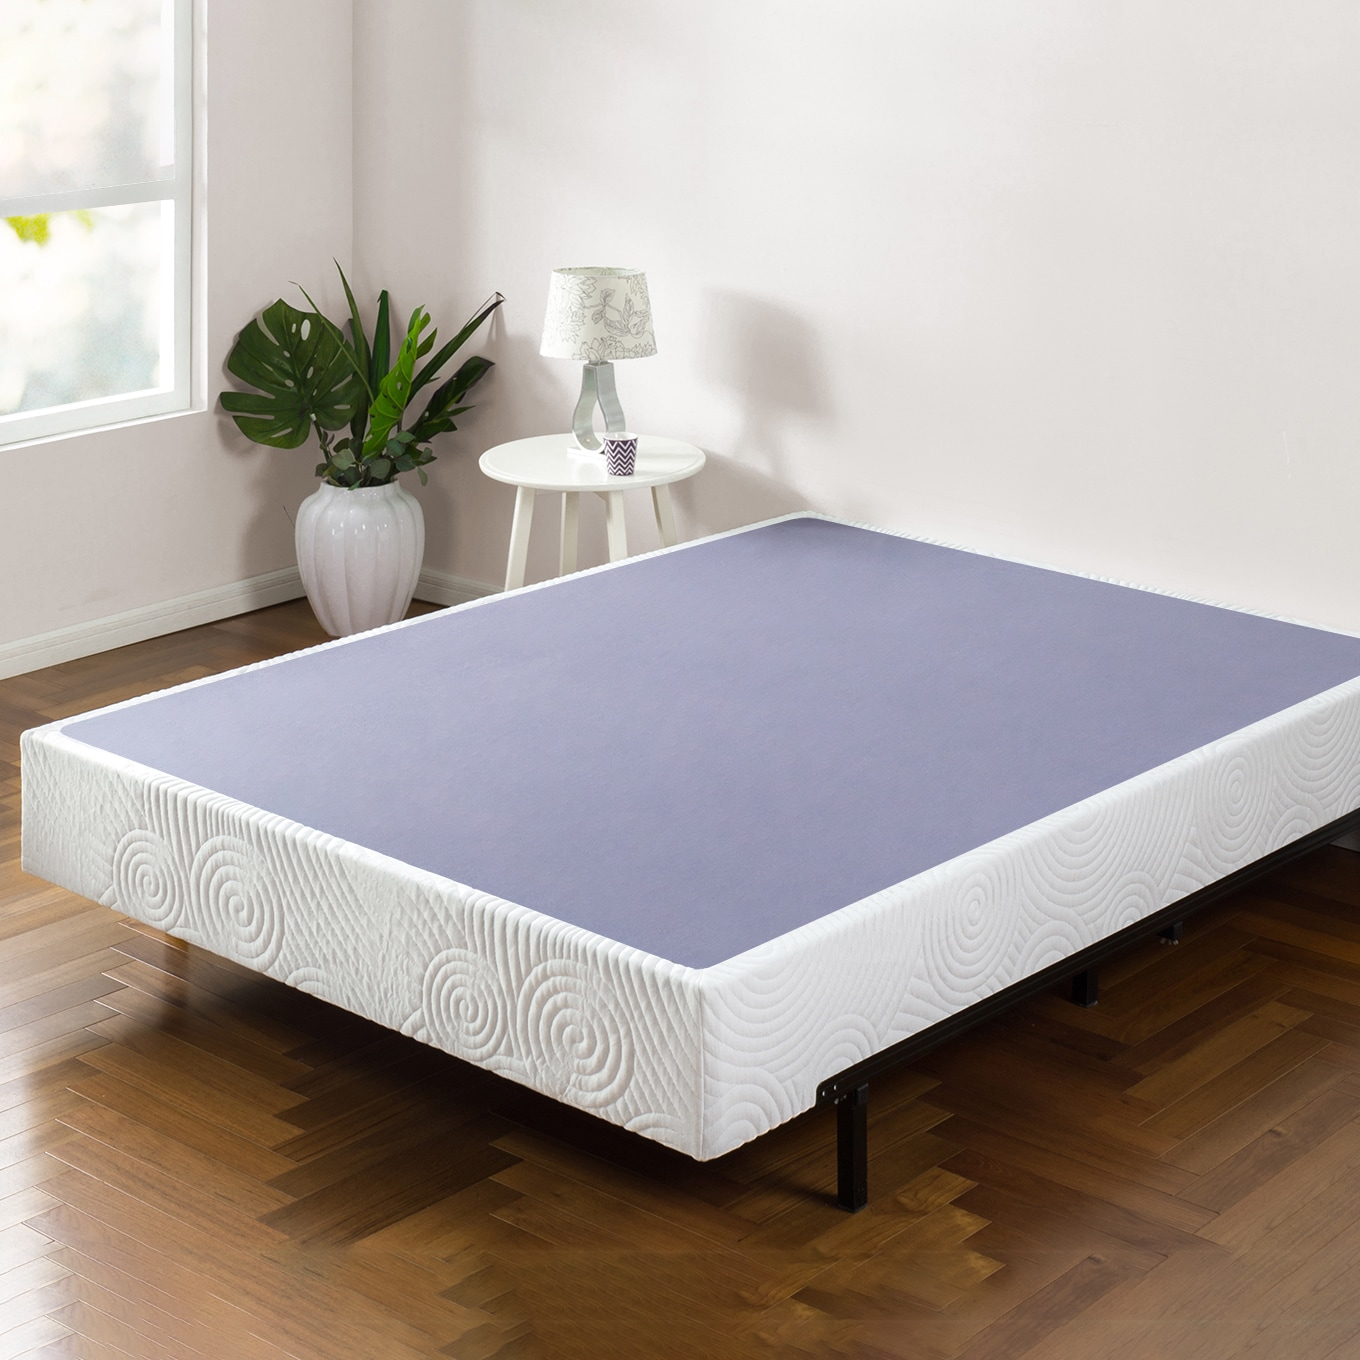 Shop Priage 9 Inch Smart Box Spring Mattress Foundation